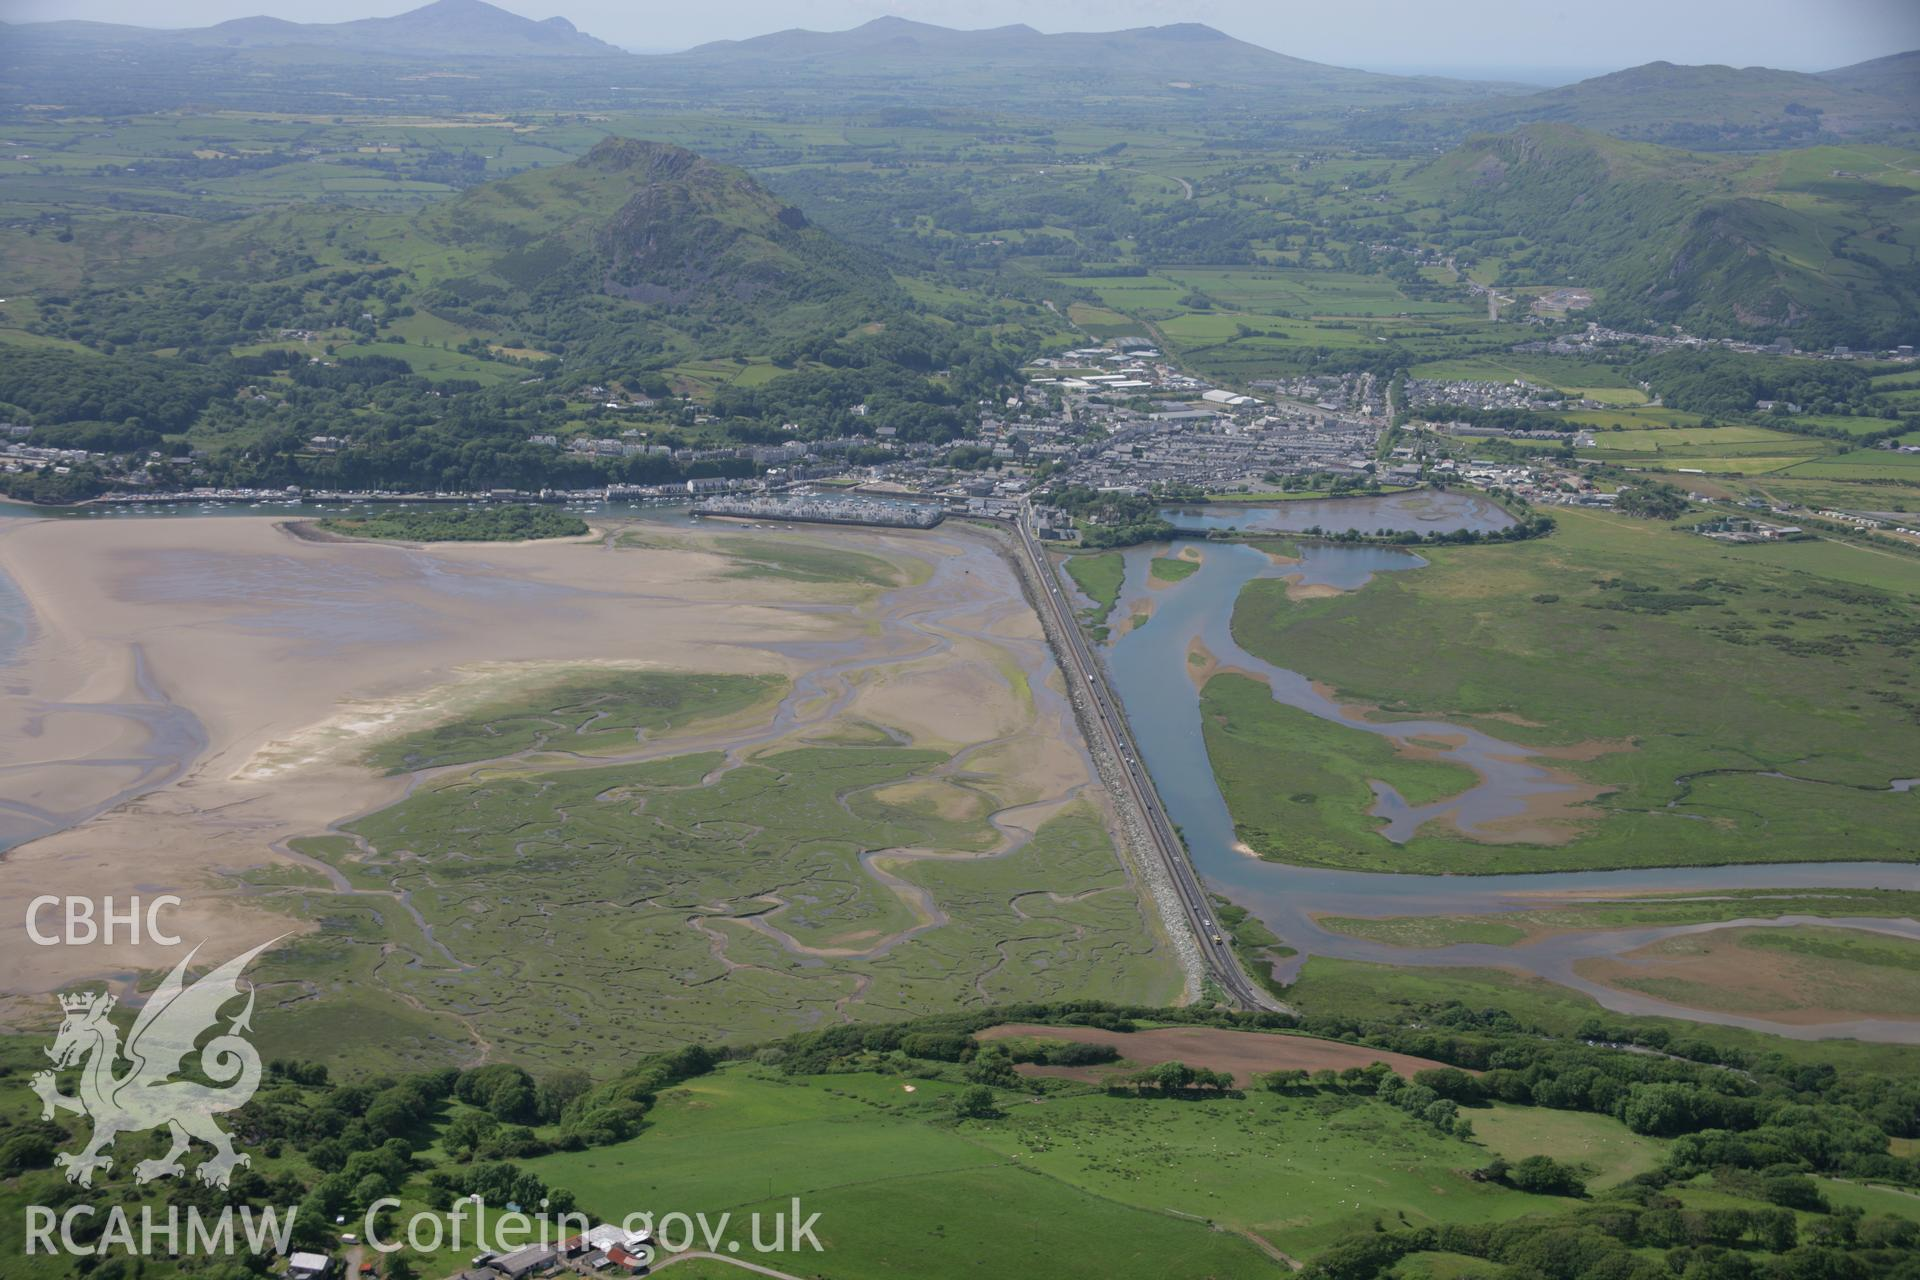 RCAHMW colour oblique aerial photograph of The Cob, Porthmadog, from the south-east. Taken on 14 June 2006 by Toby Driver.